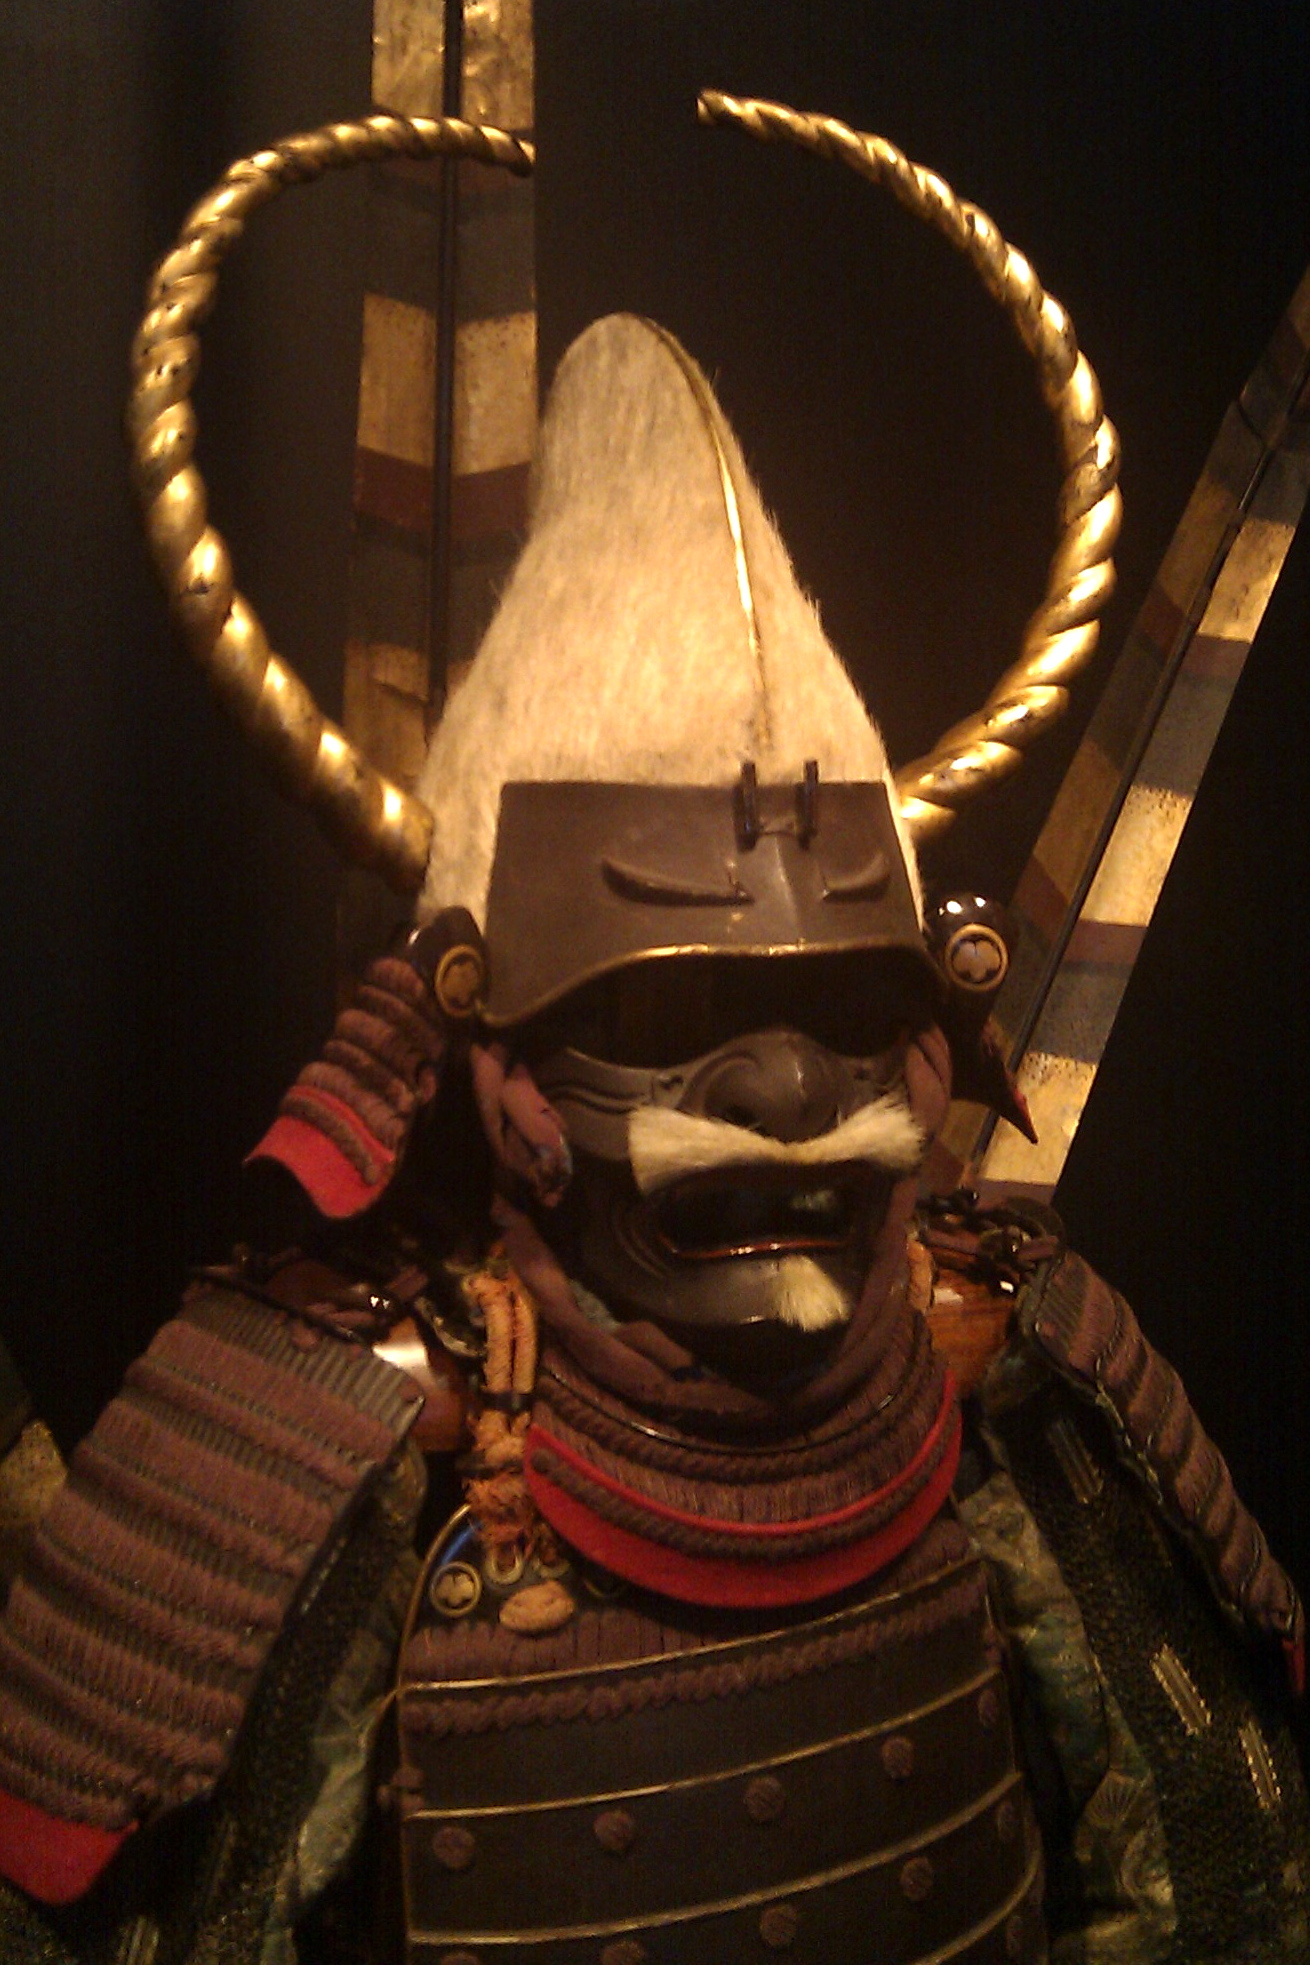 Closeup of the helmet and faceguard of a suit of Japanese armor.